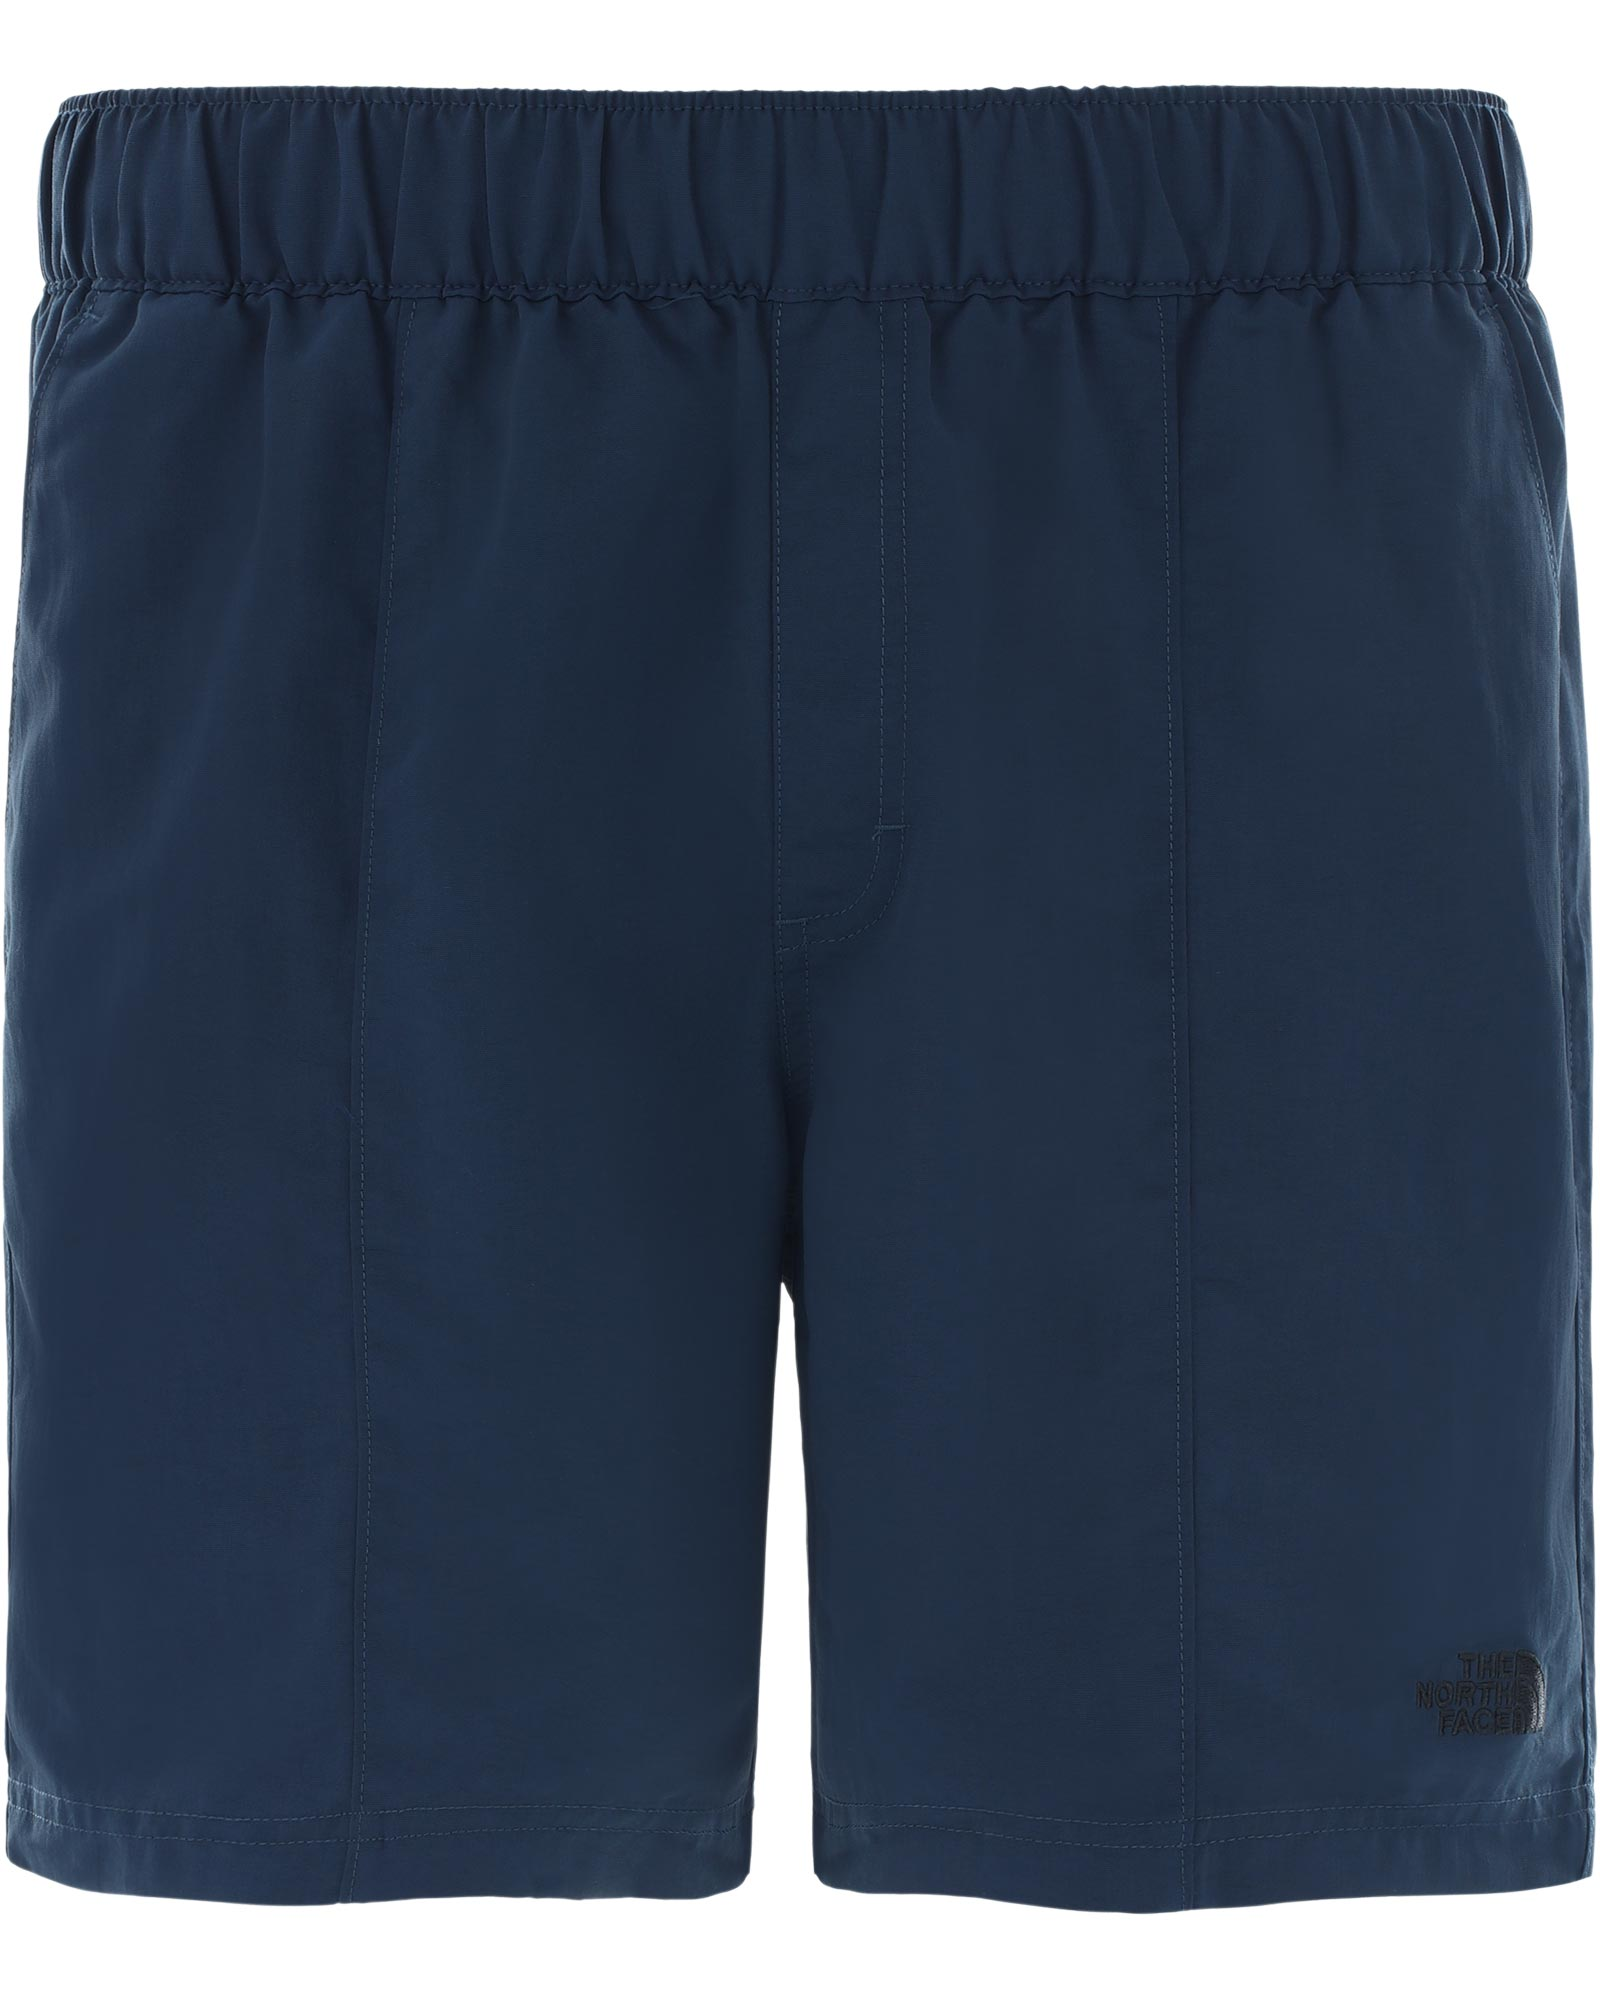 Product image of The North Face Men's Class V Pull On Trunk